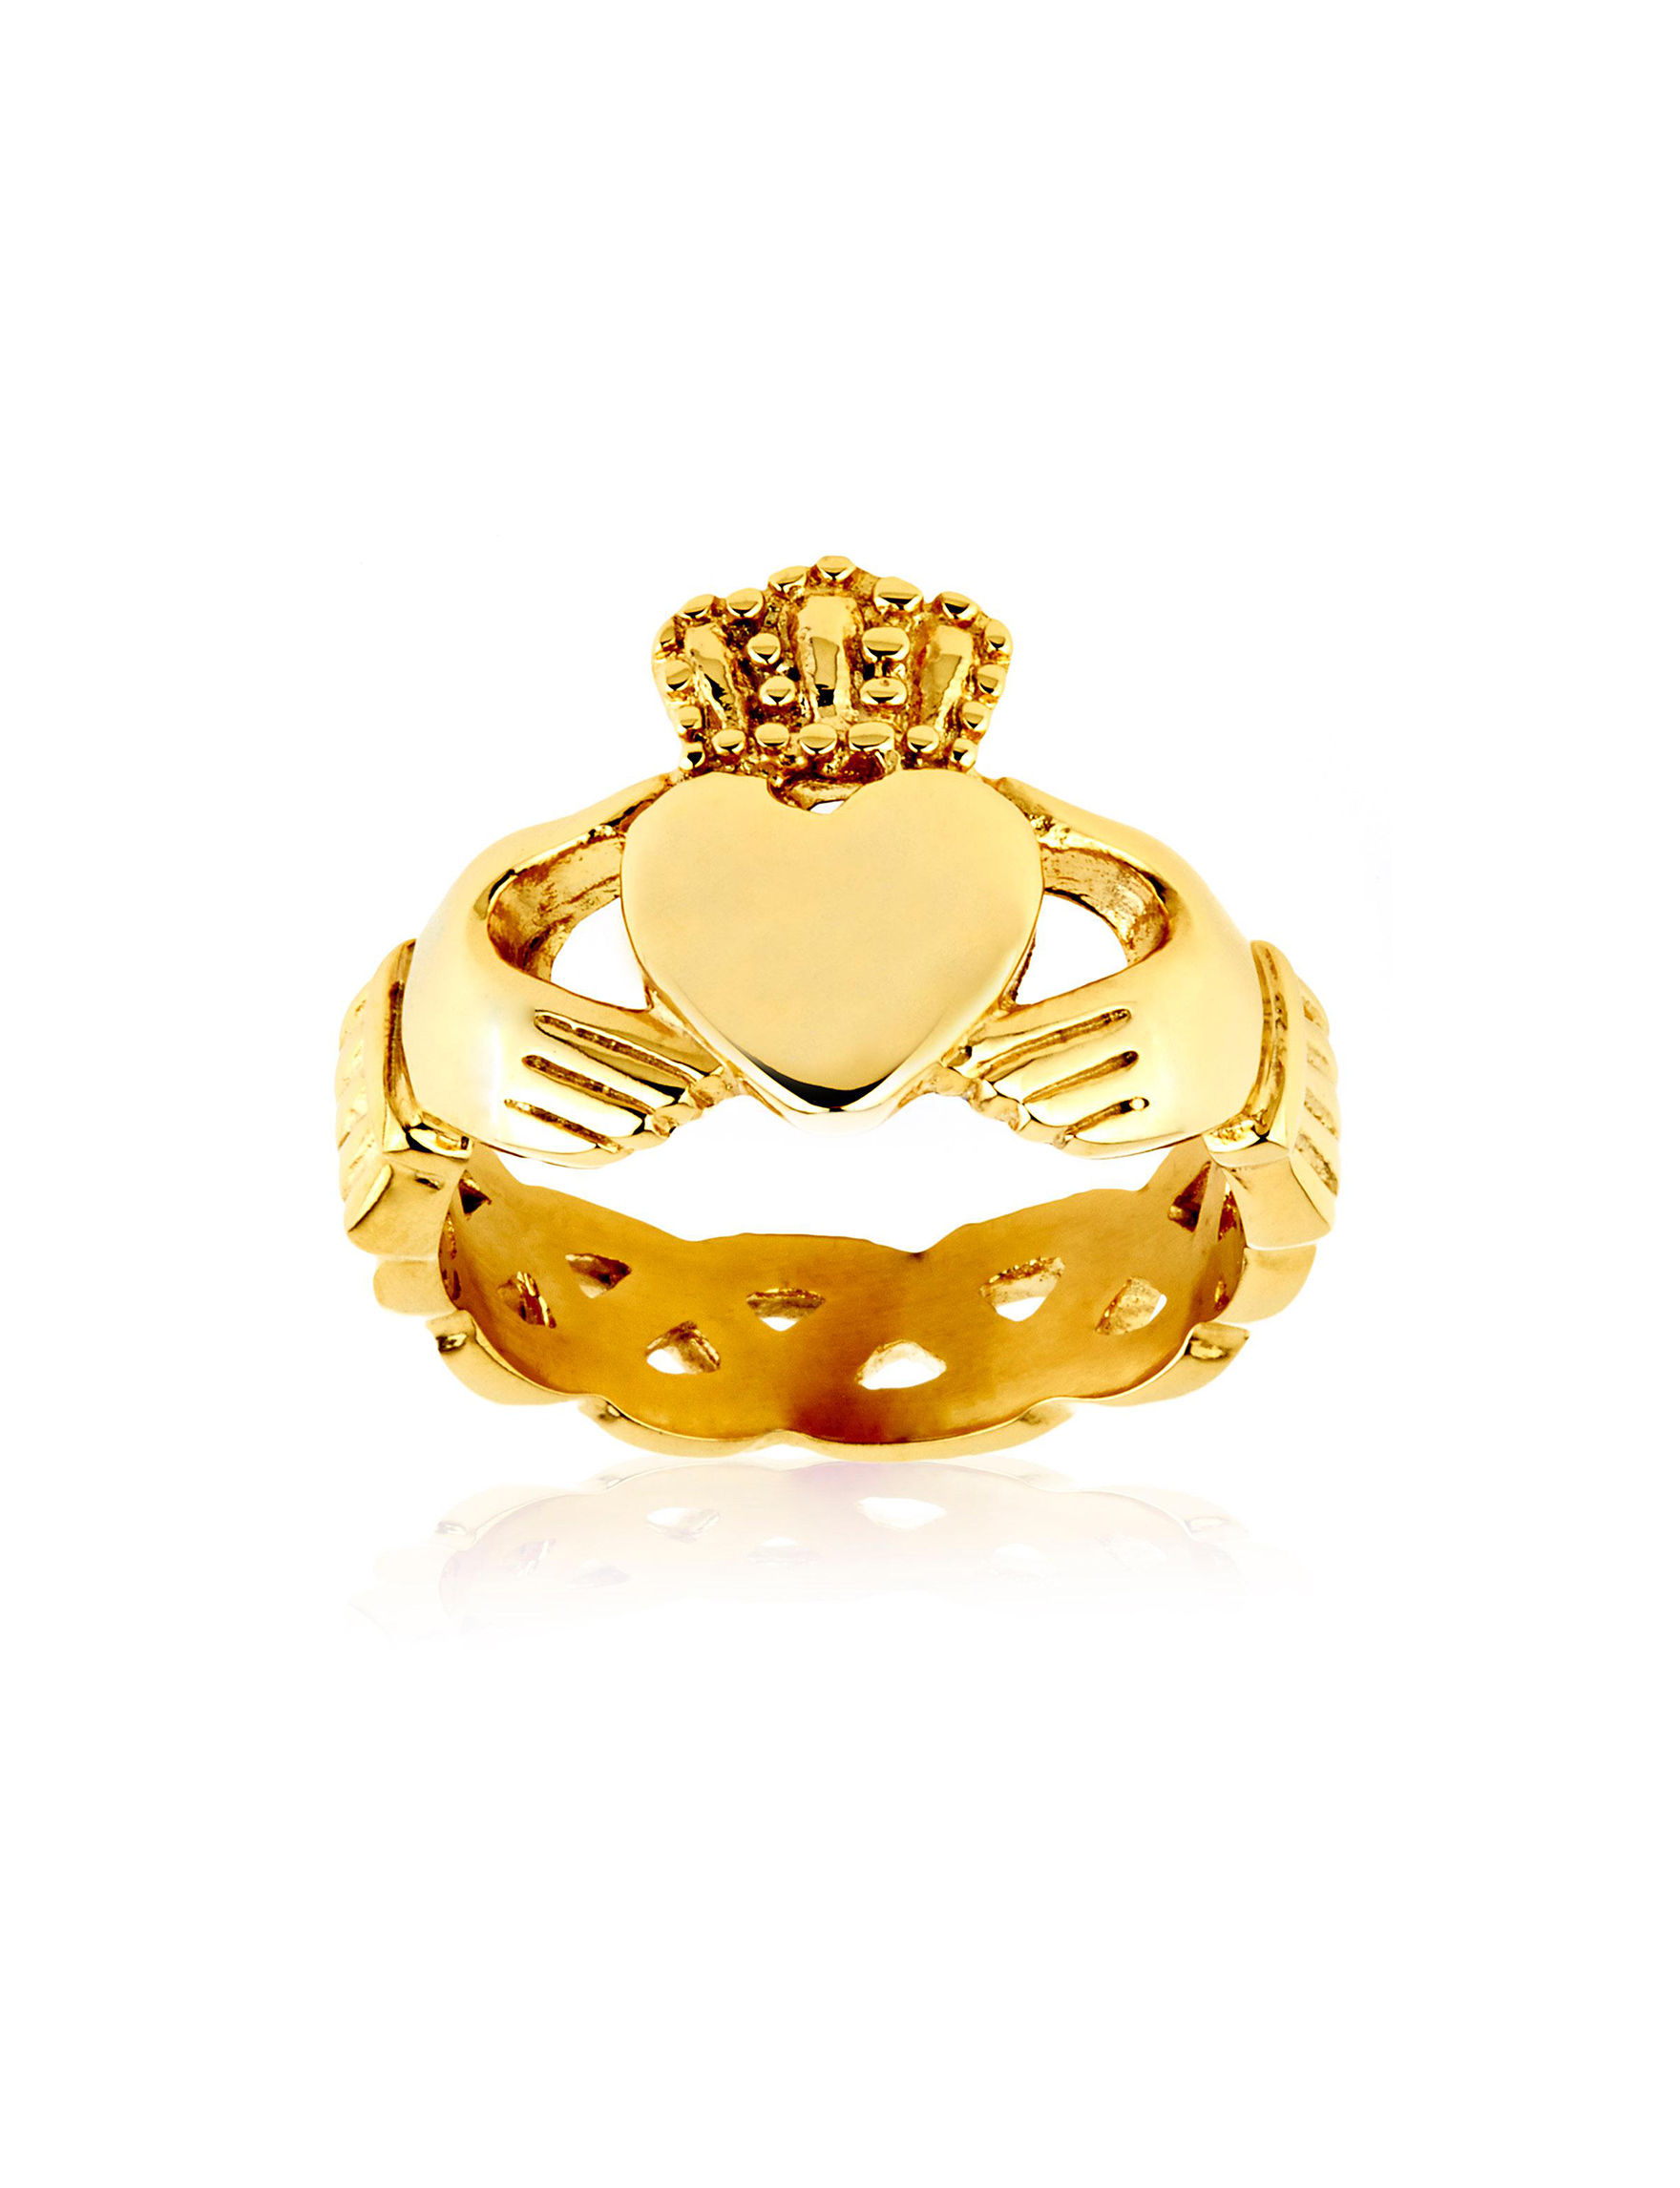 Crucible Gold Rings Fine Jewelry